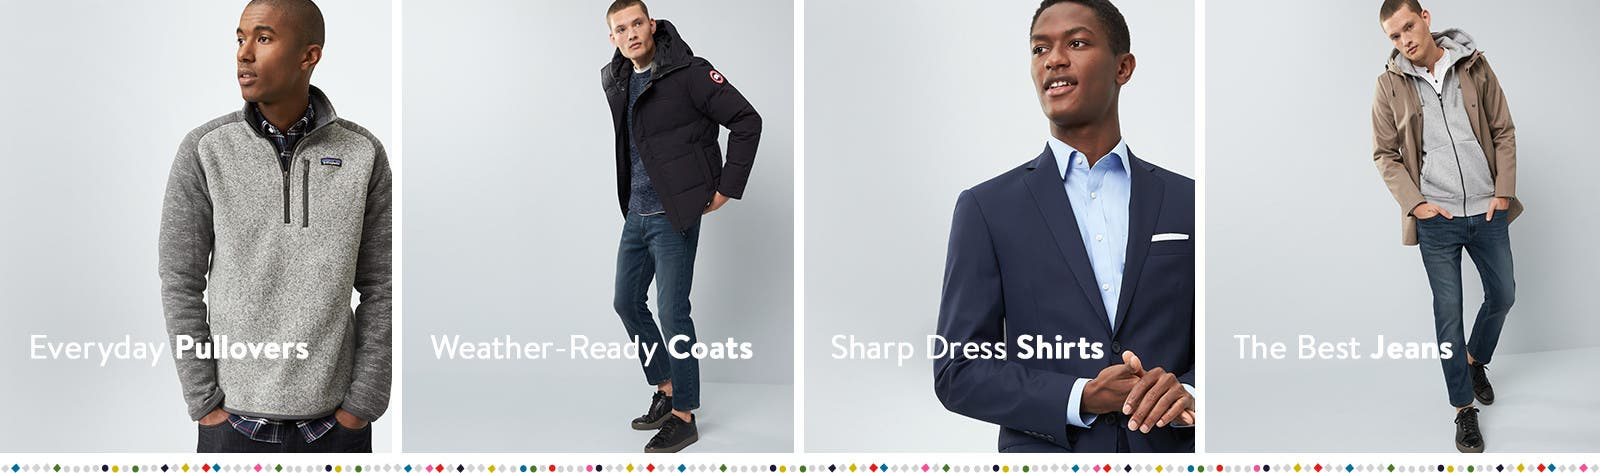 Everyday pullovers. Weather-ready coats. Sharp dress shirts. Sharp dress shirts.